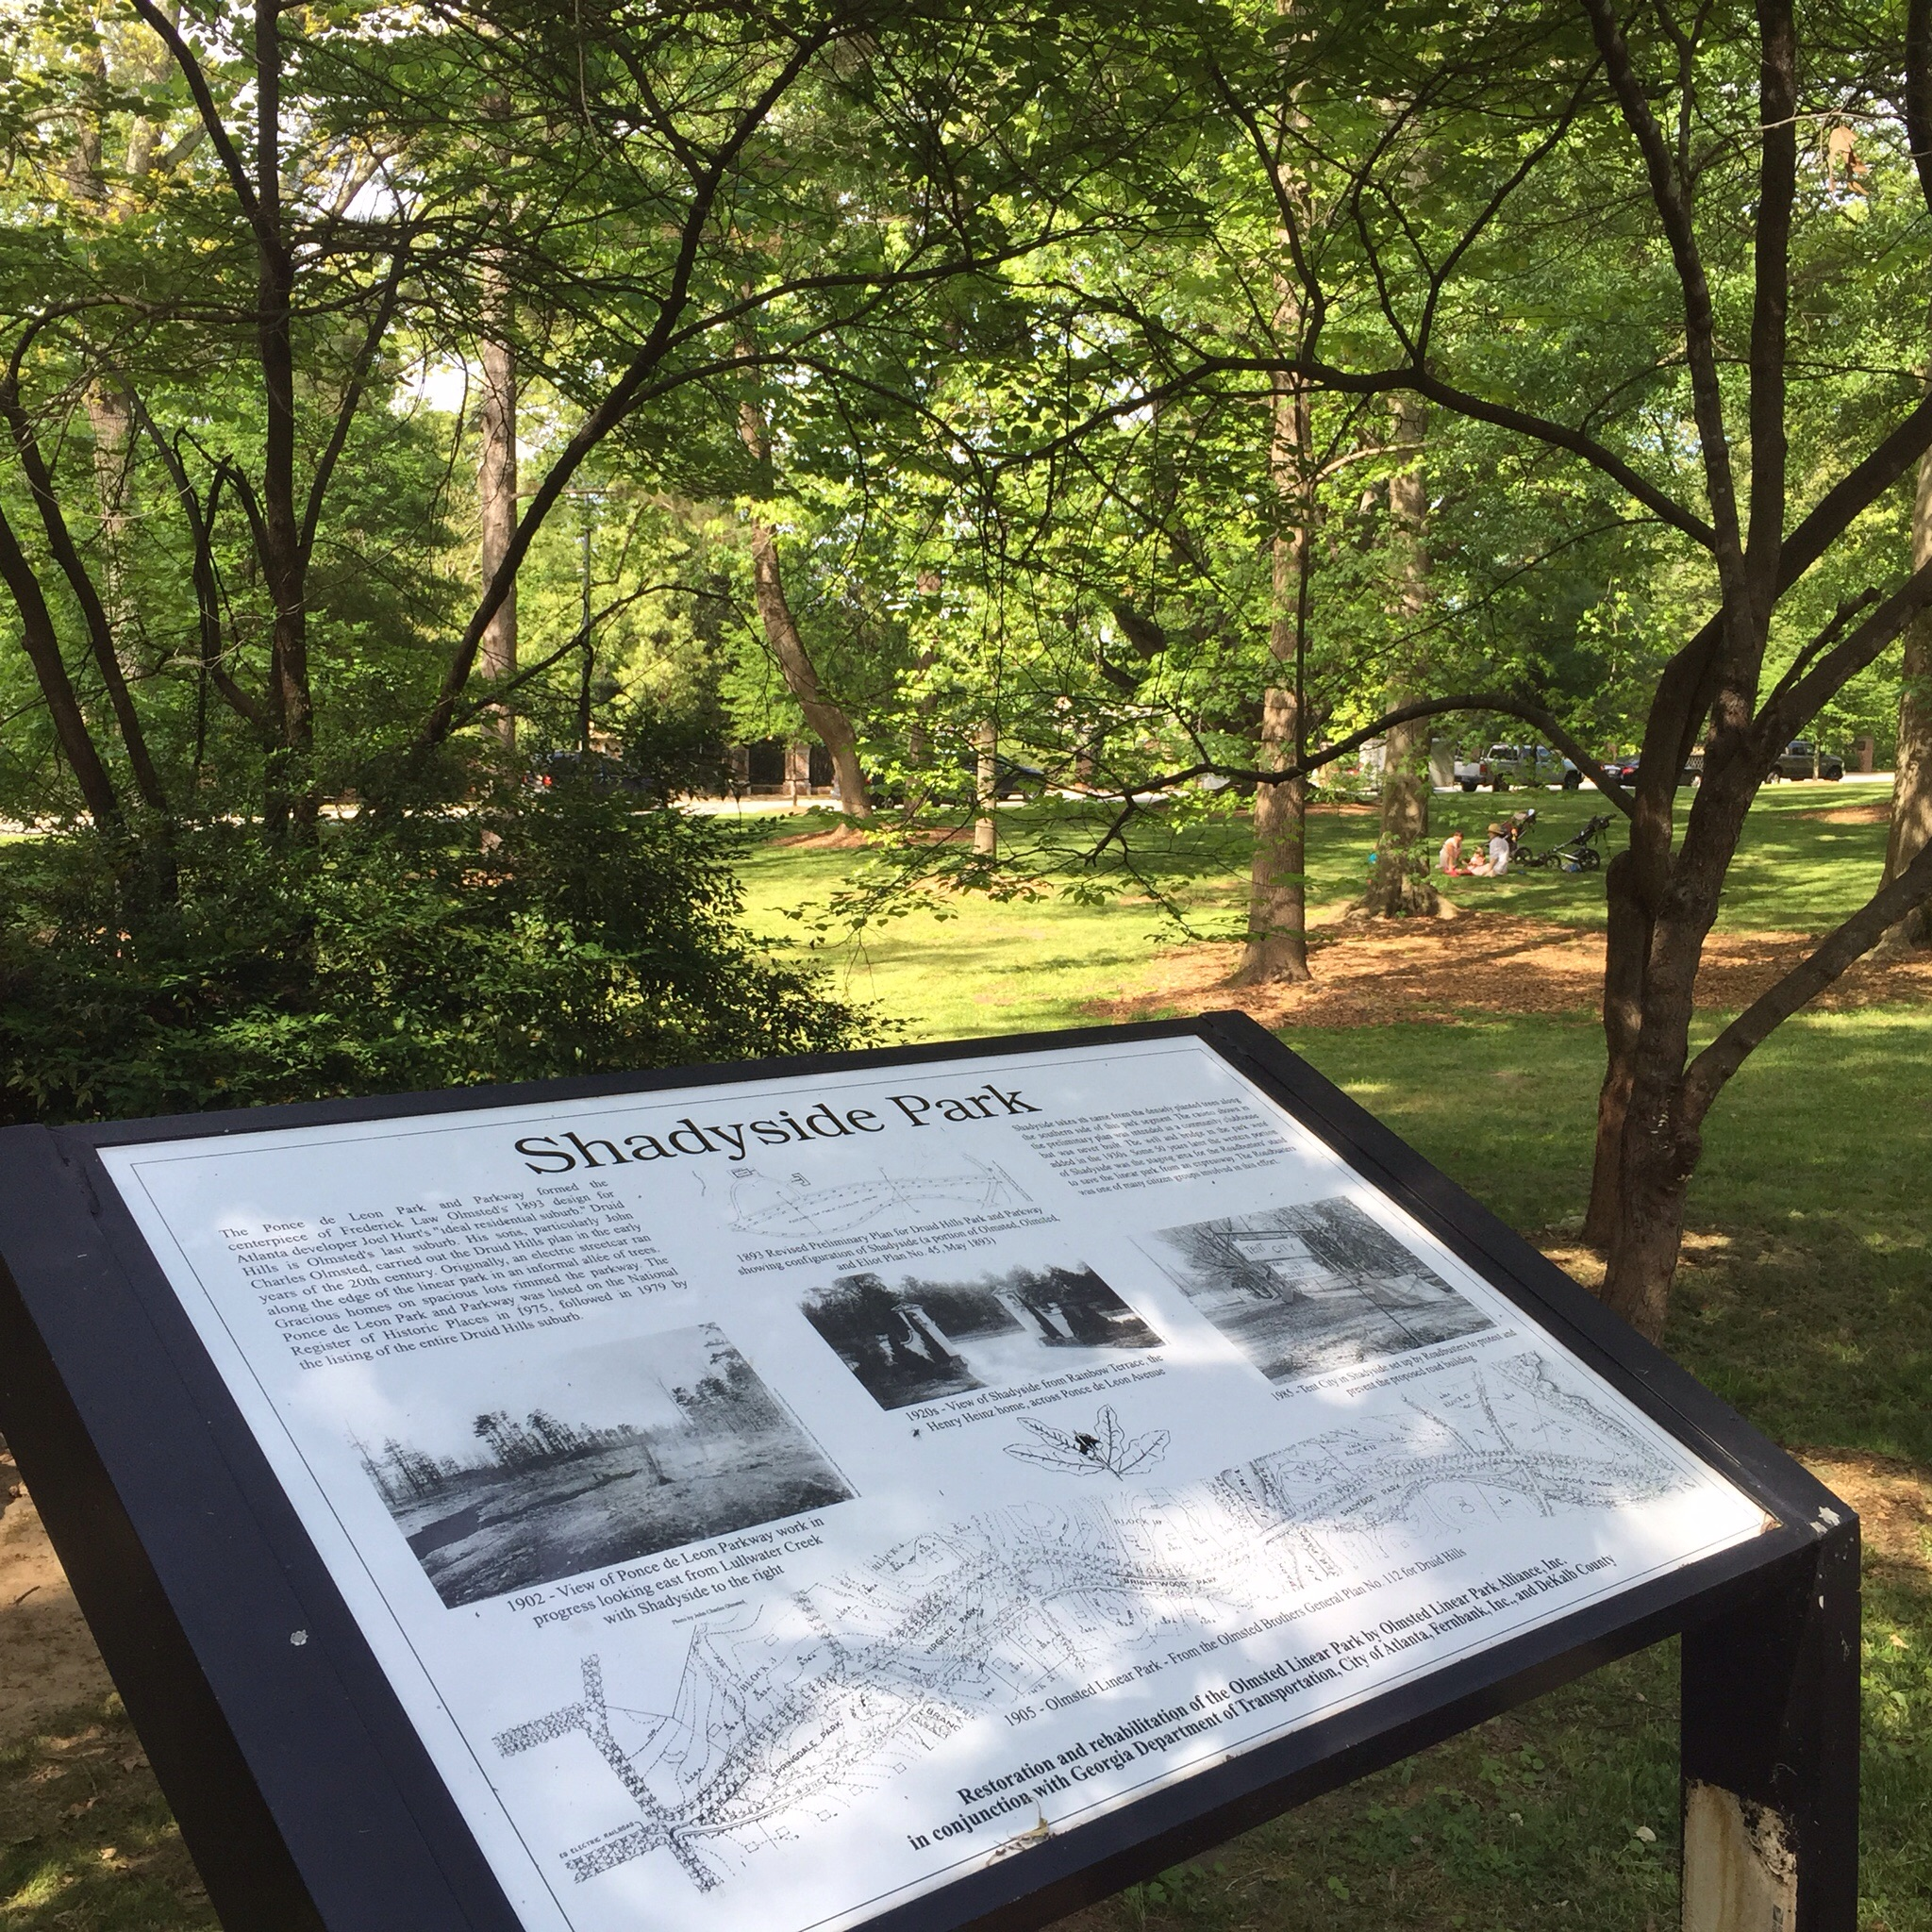 The parks are actually a string of six parks. Shadyside Park is an example of the structure and environment where this event was set.